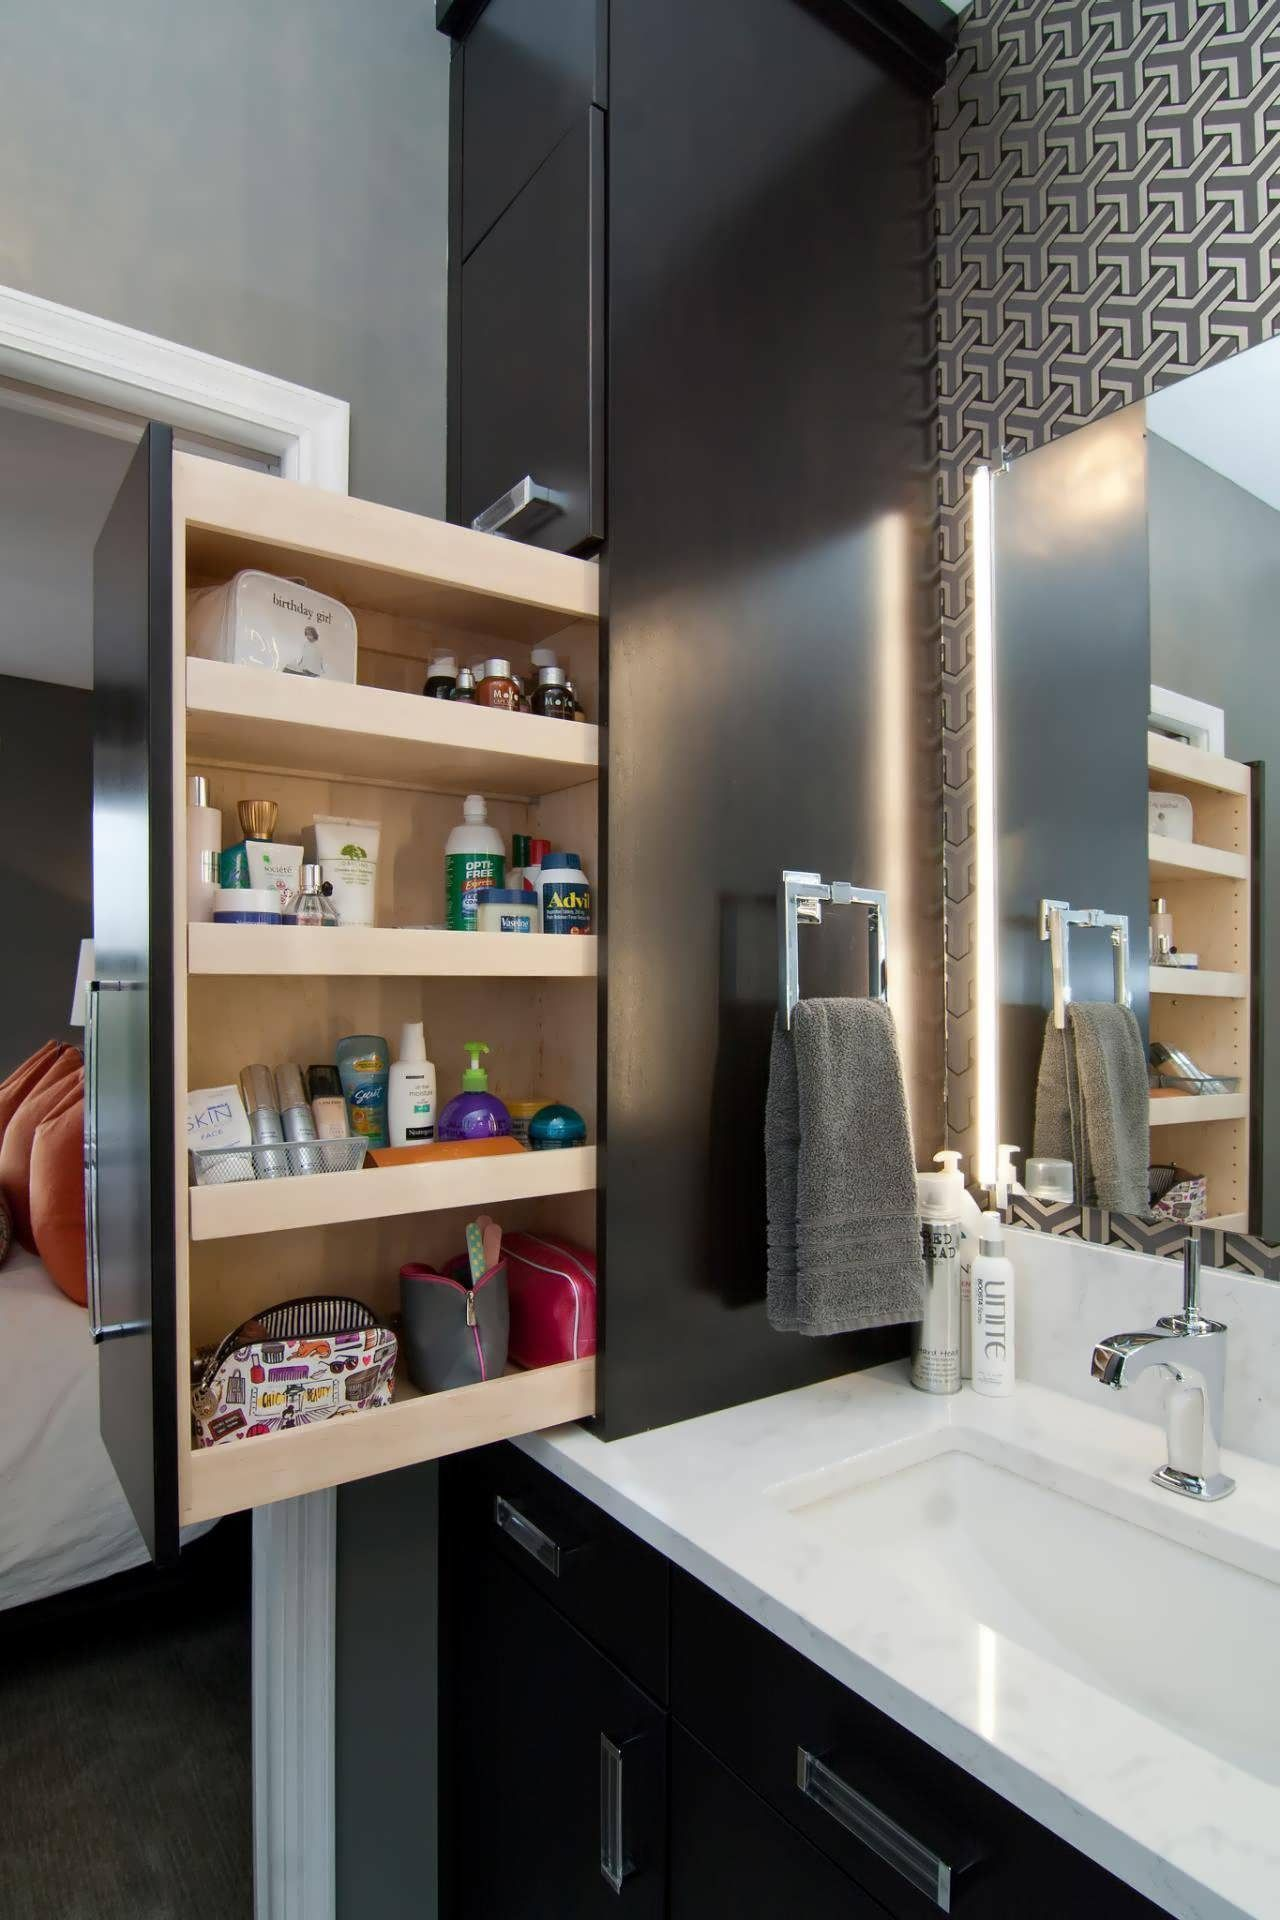 Laundry Room Bathroom Storage Cabinet Built In Shelves With Drawer Shelf Tall Skinny Ikea Diy Bathroom Storage Small Bathroom Storage Bathroom Storage Cabinet [ 1920 x 1280 Pixel ]